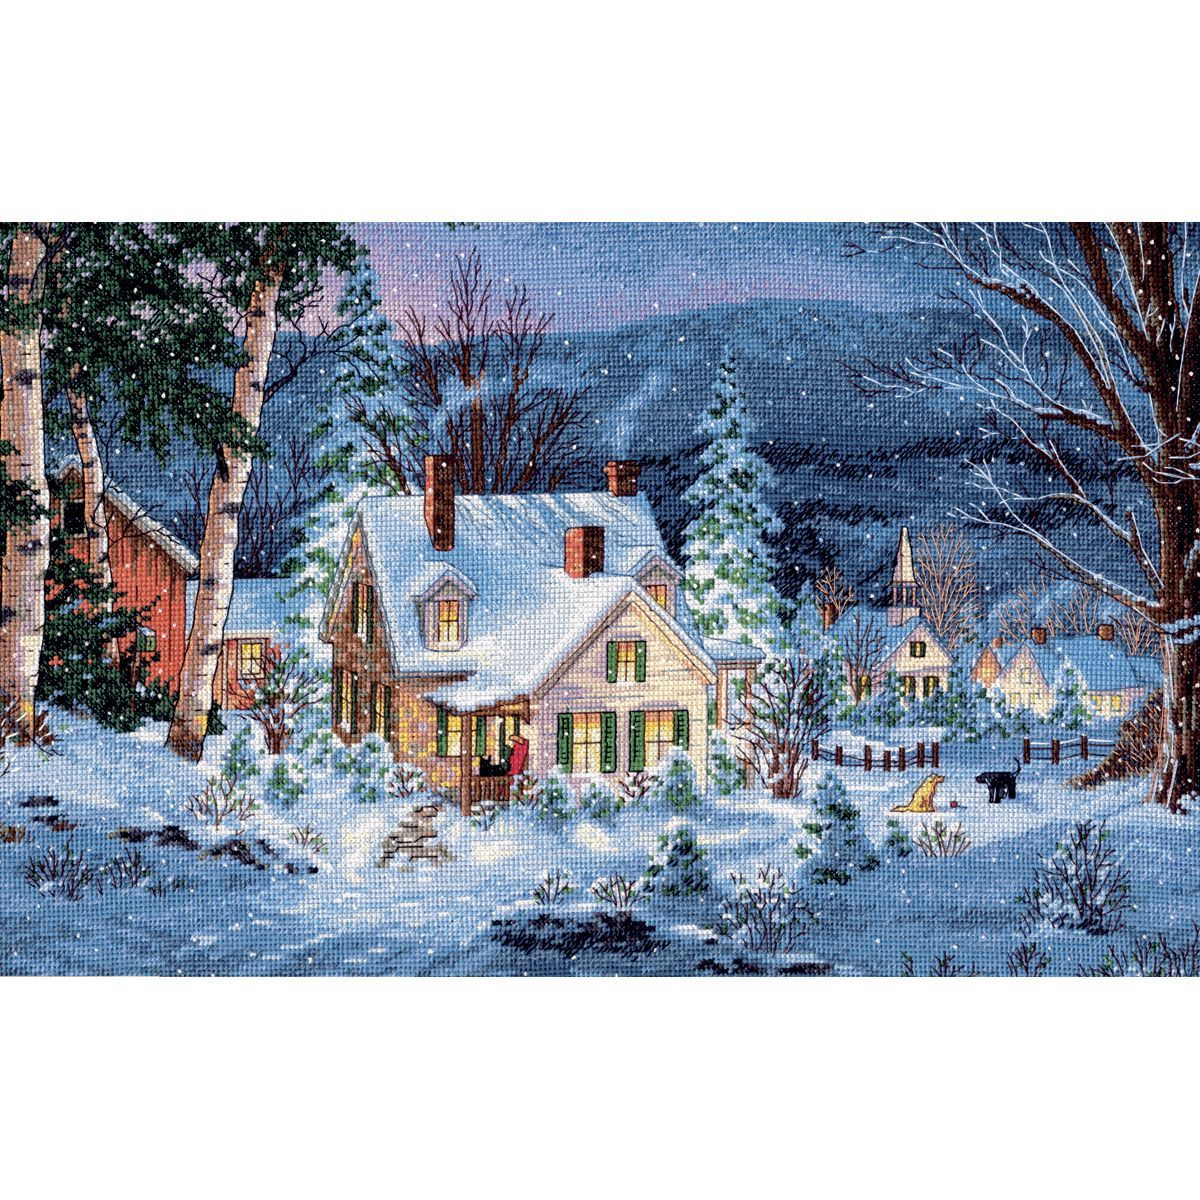 Bright Diy Cross-stitch Kits For Embroidery Chinese Cross Stitch Patterns 14ct White Canvas Landscape European Street Home Decoration Package Cross-stitch